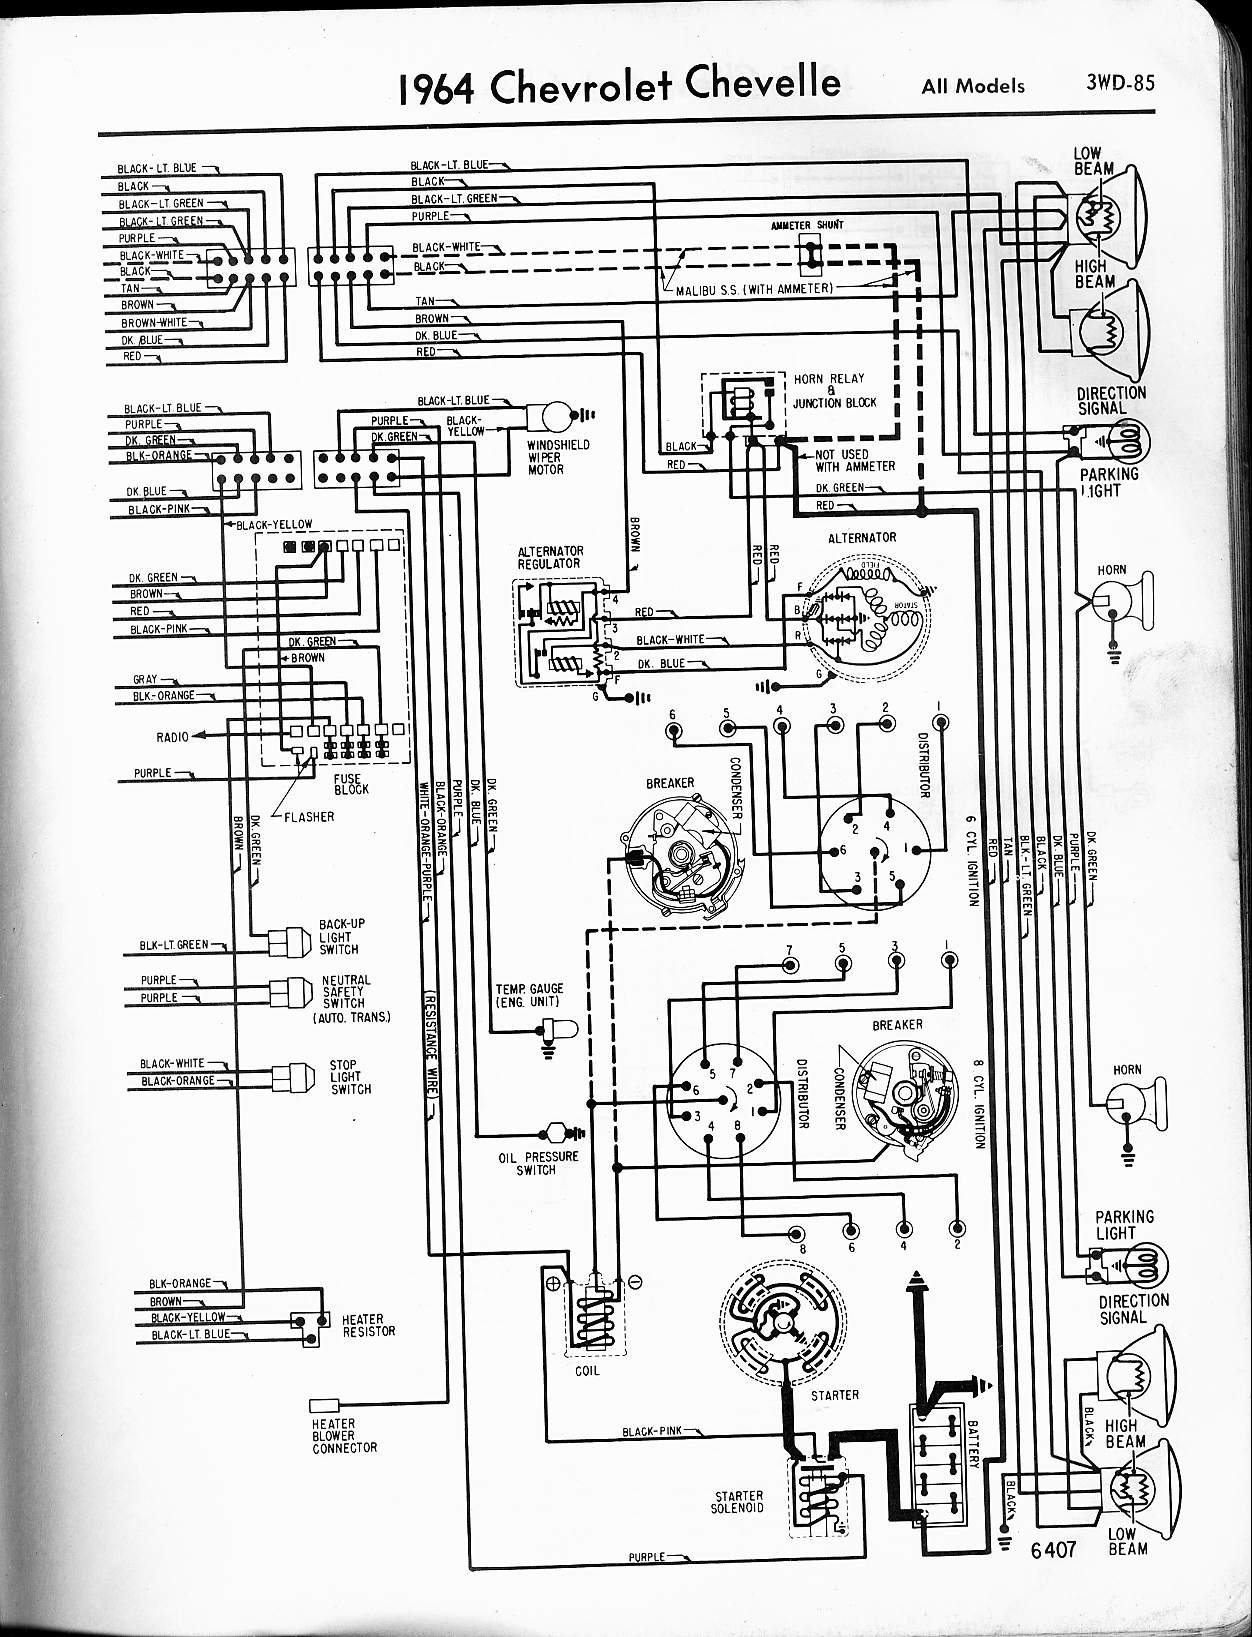 4eec0f 1964 mustang tail light wiring diagram | wiring library  wiring library